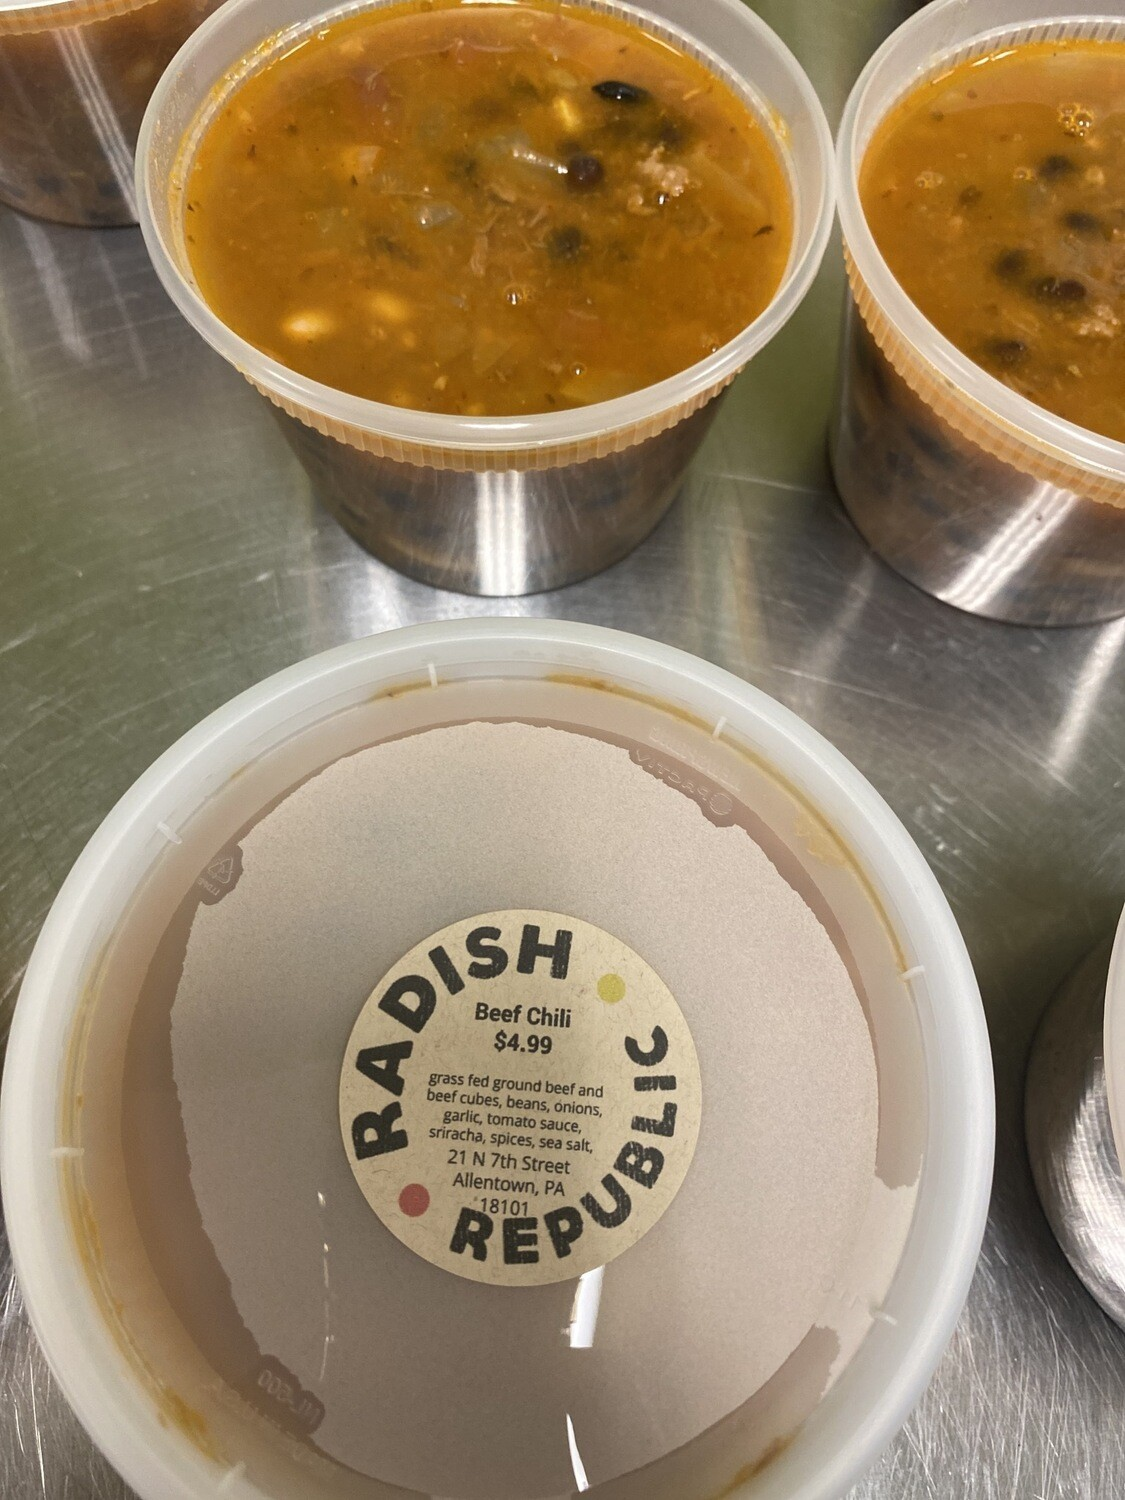 Radish Republic Beef Chili 16 ounce microwaveable plastic container